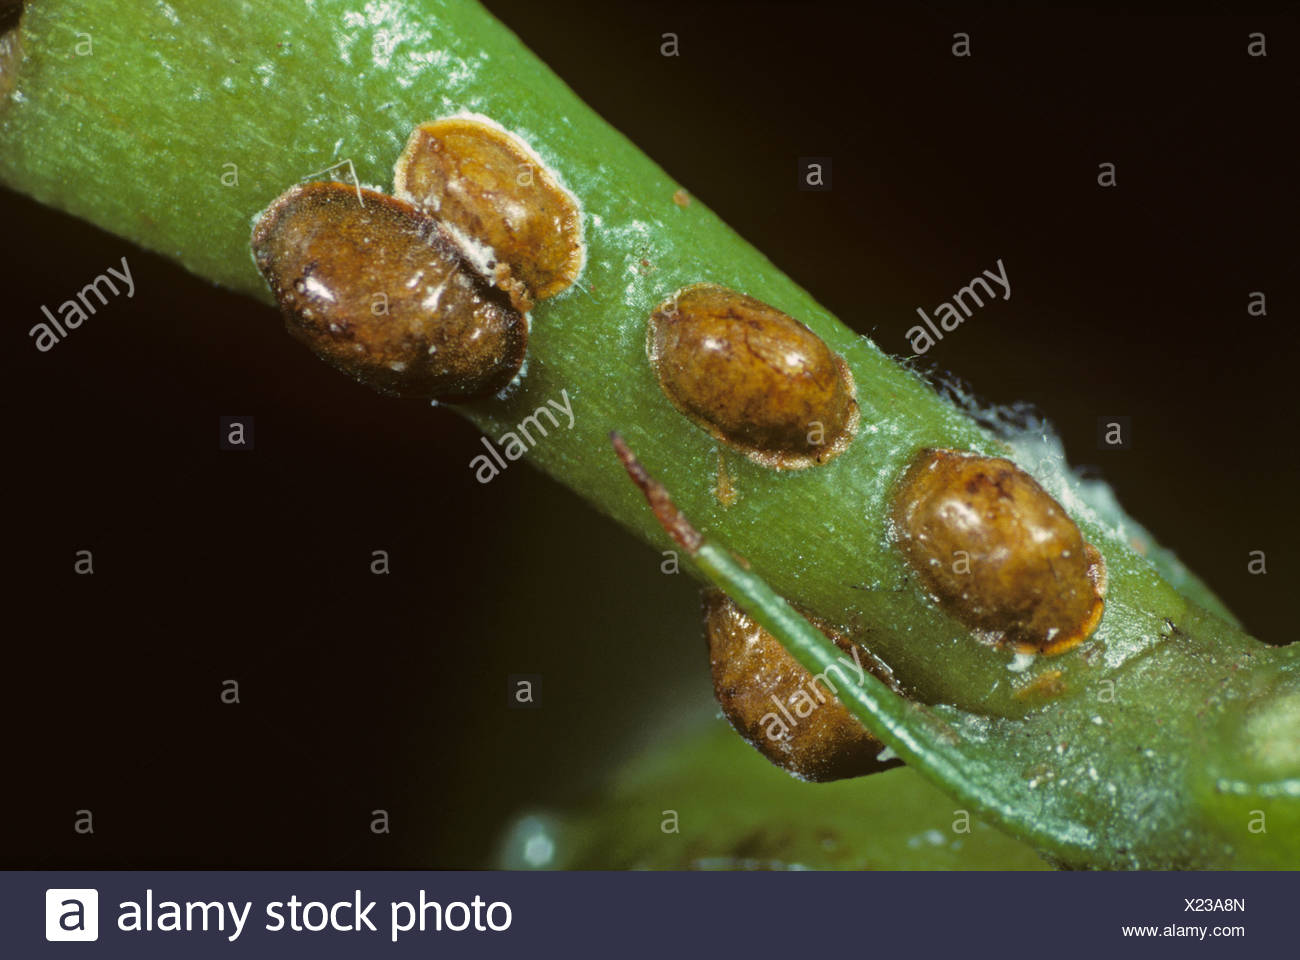 Brown scale insect, Parthenolecanium corni, on the stem of an indoor ornamental plant - Stock Image